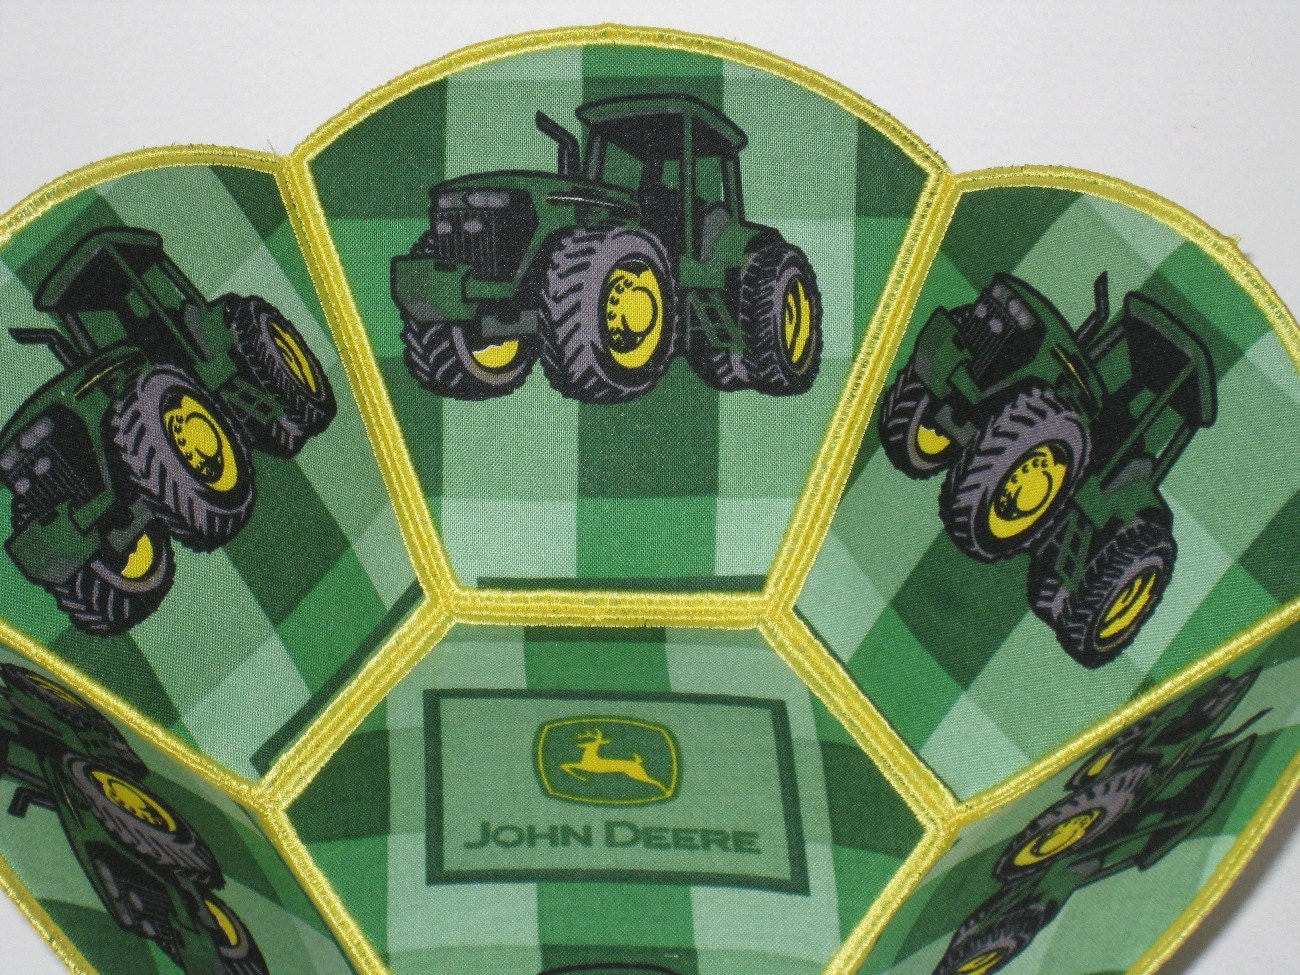 John Deere Machine Embroidery : John deere tractor embroidered fabric bowl reversible green